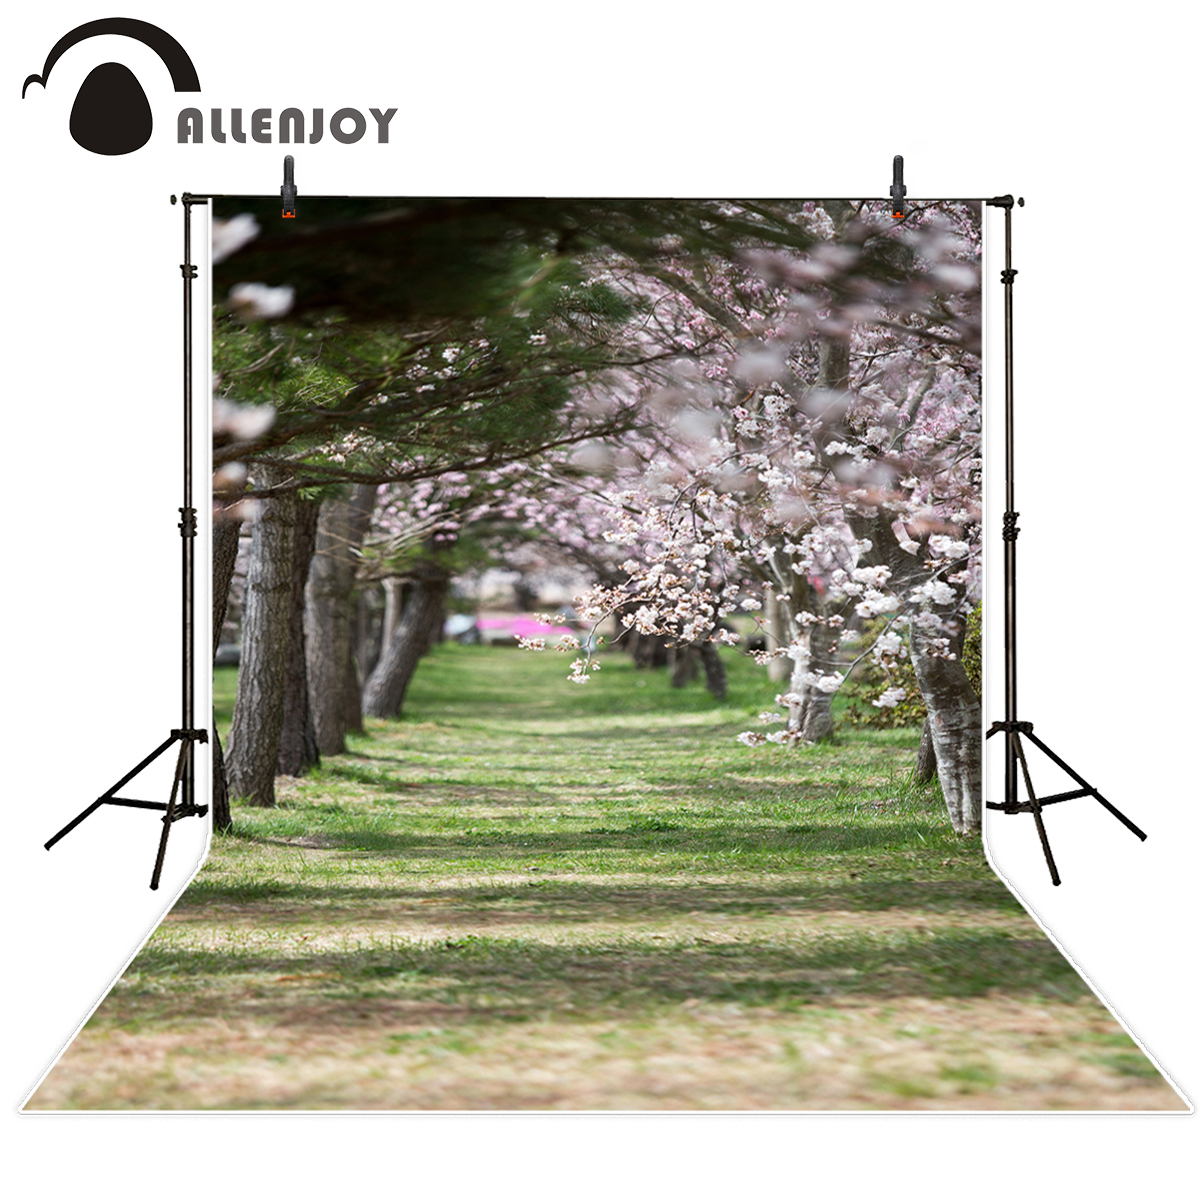 Allenjoy photography background grass lawn and cherry blossoms spring Funds for newborn background for photographic studio analysis and performance of mutual funds